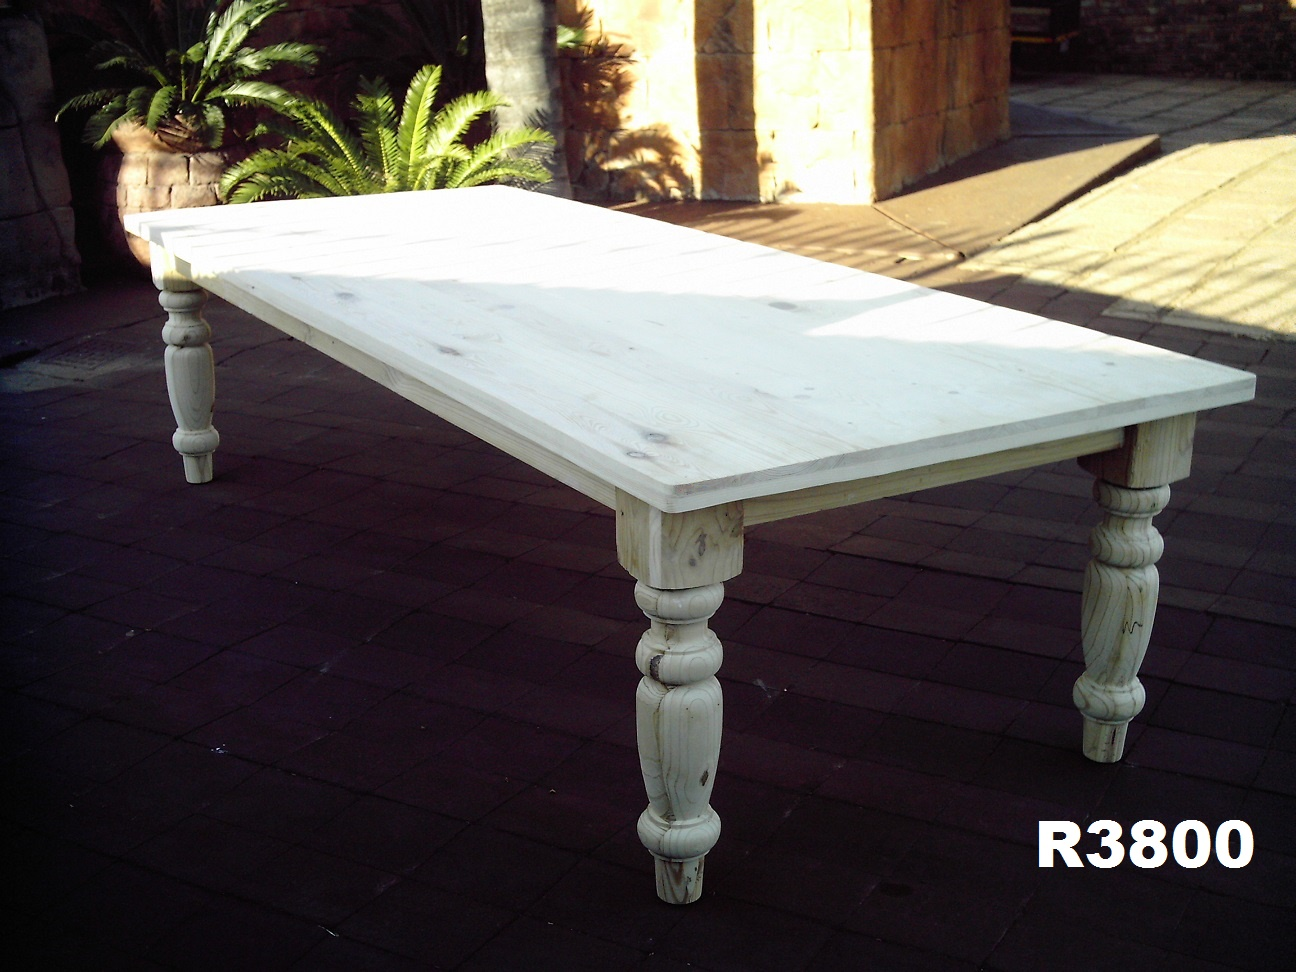 12 Seater Farmstyle Table (3000x1200)